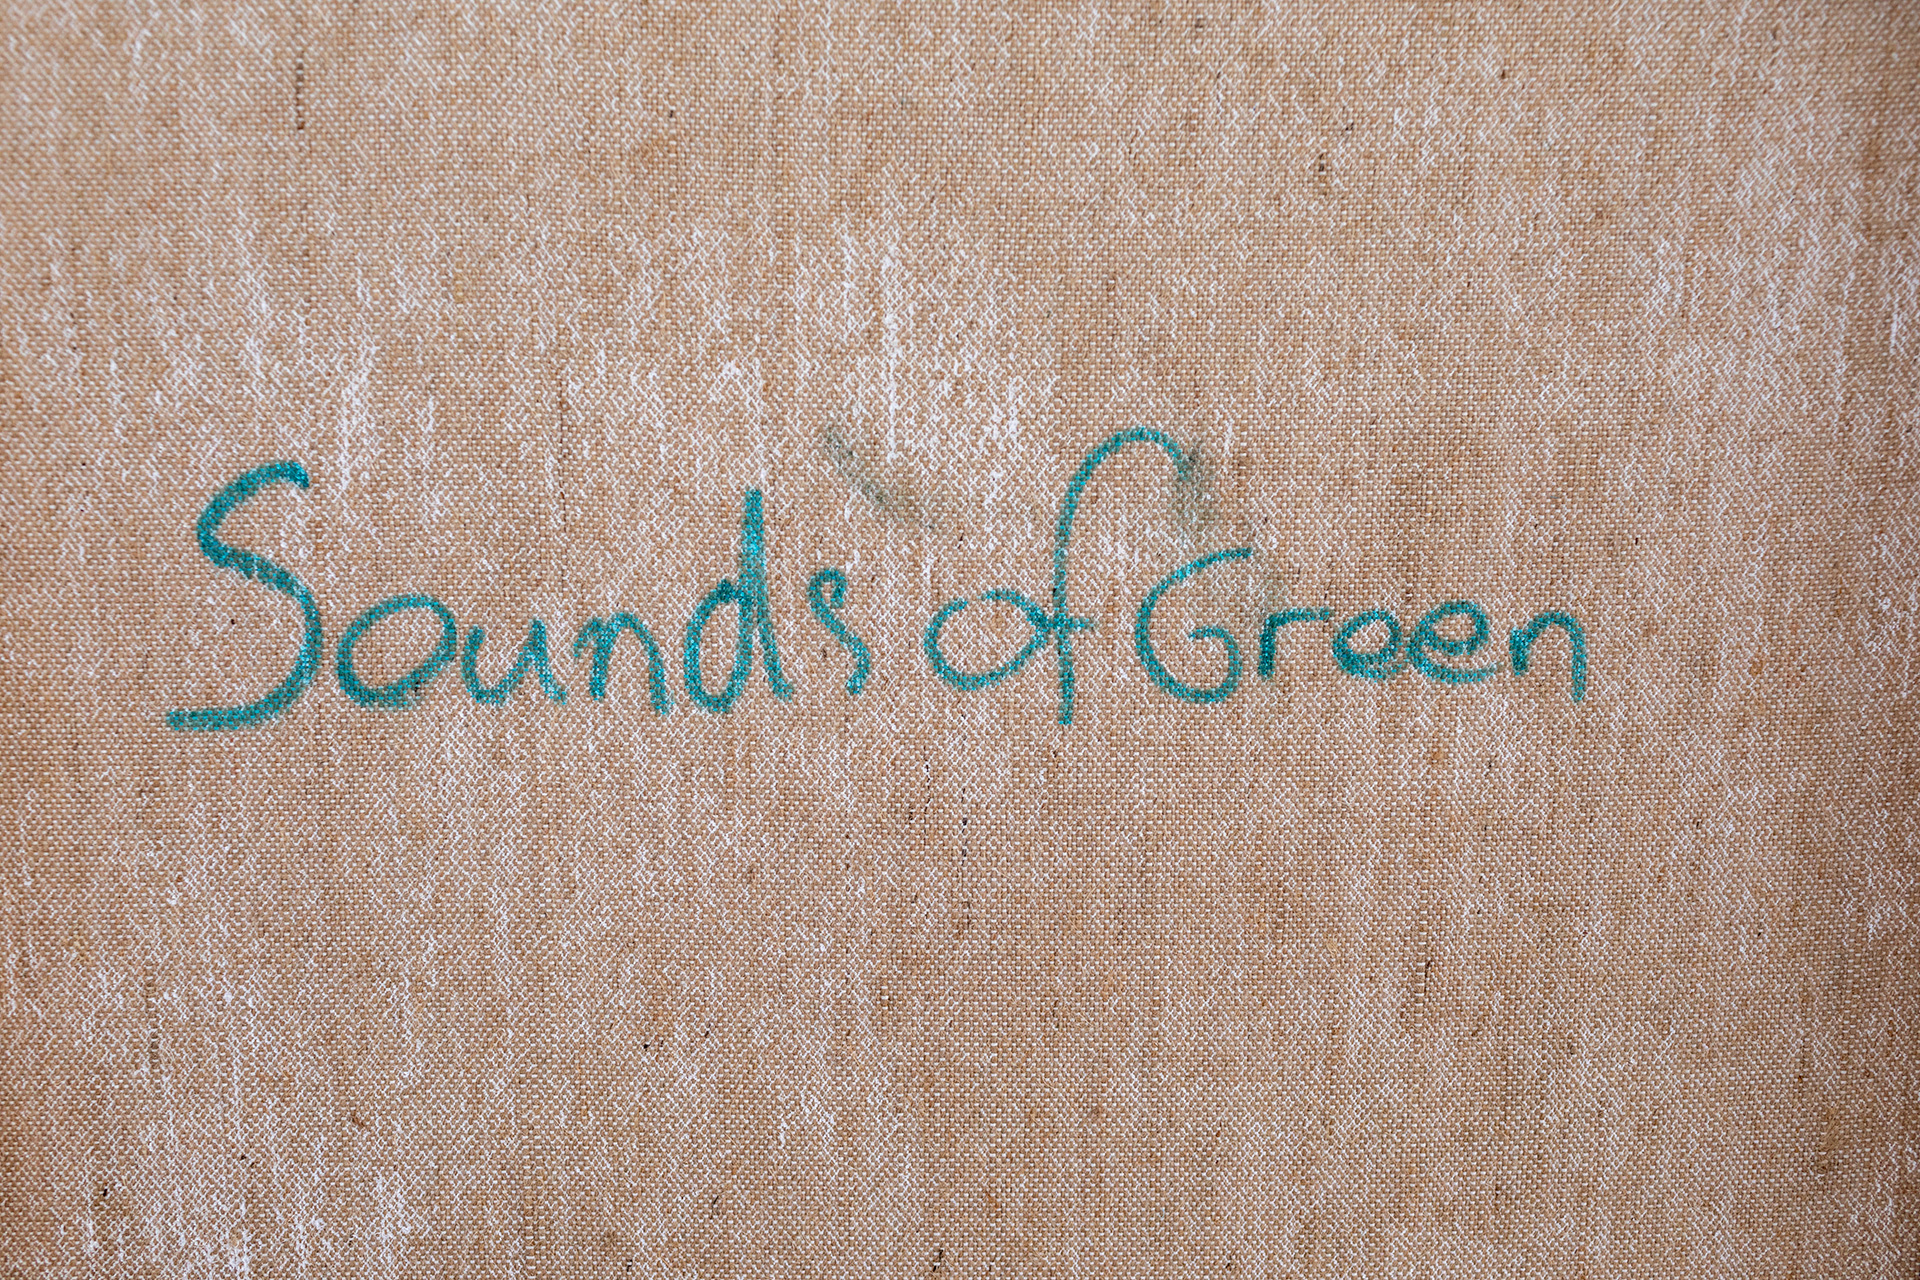 Sounds of green